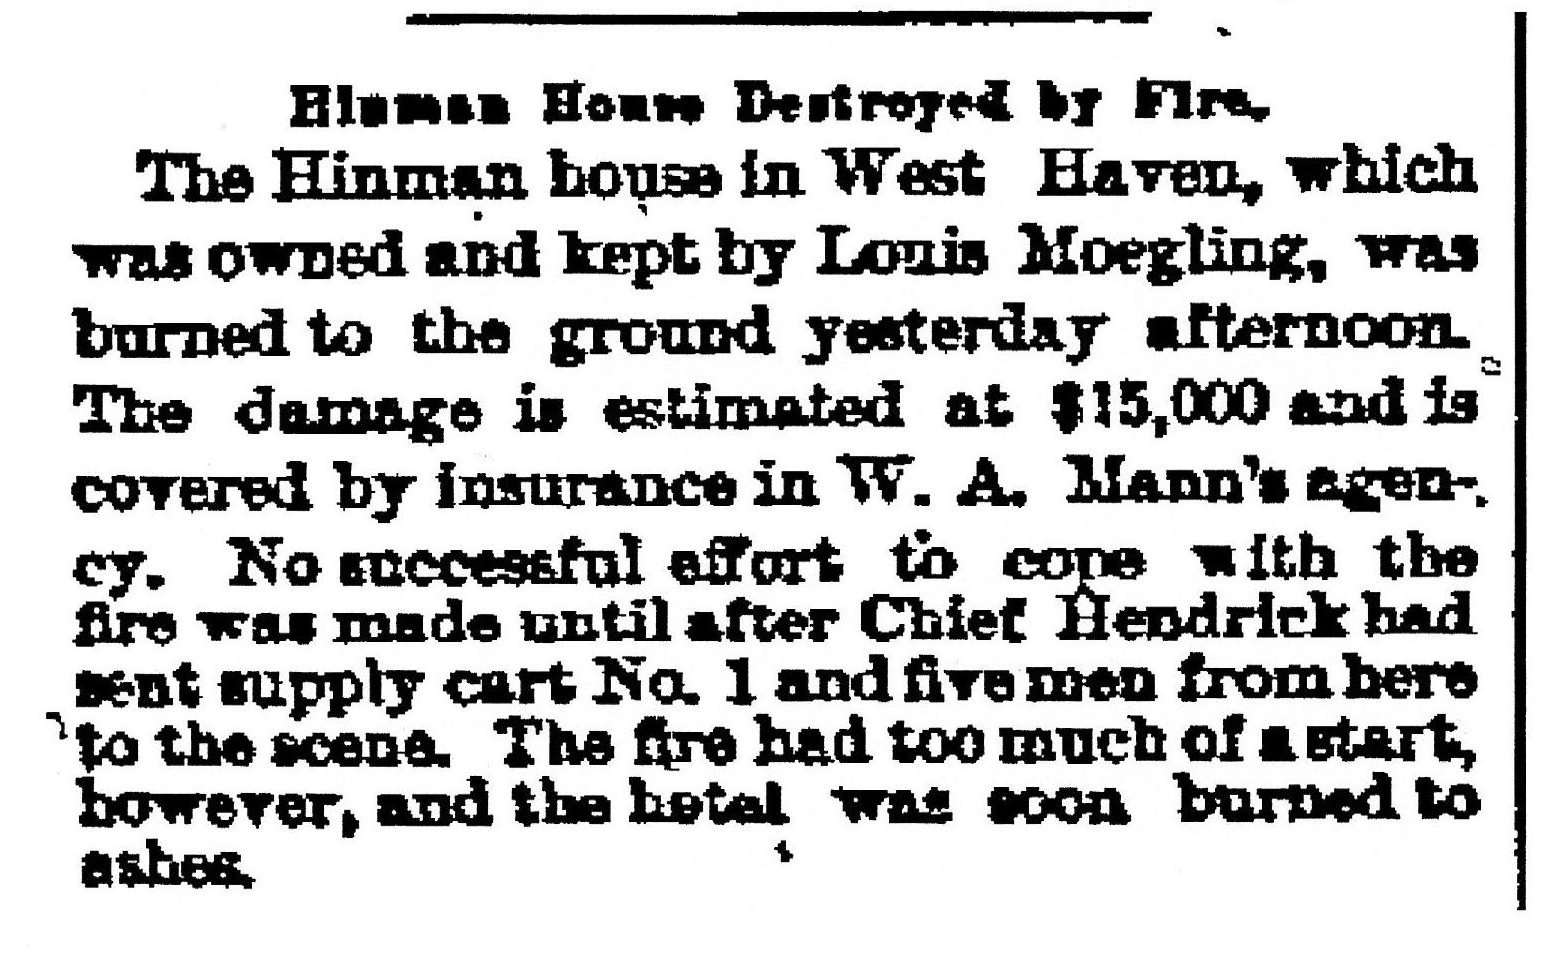 Hinman House article